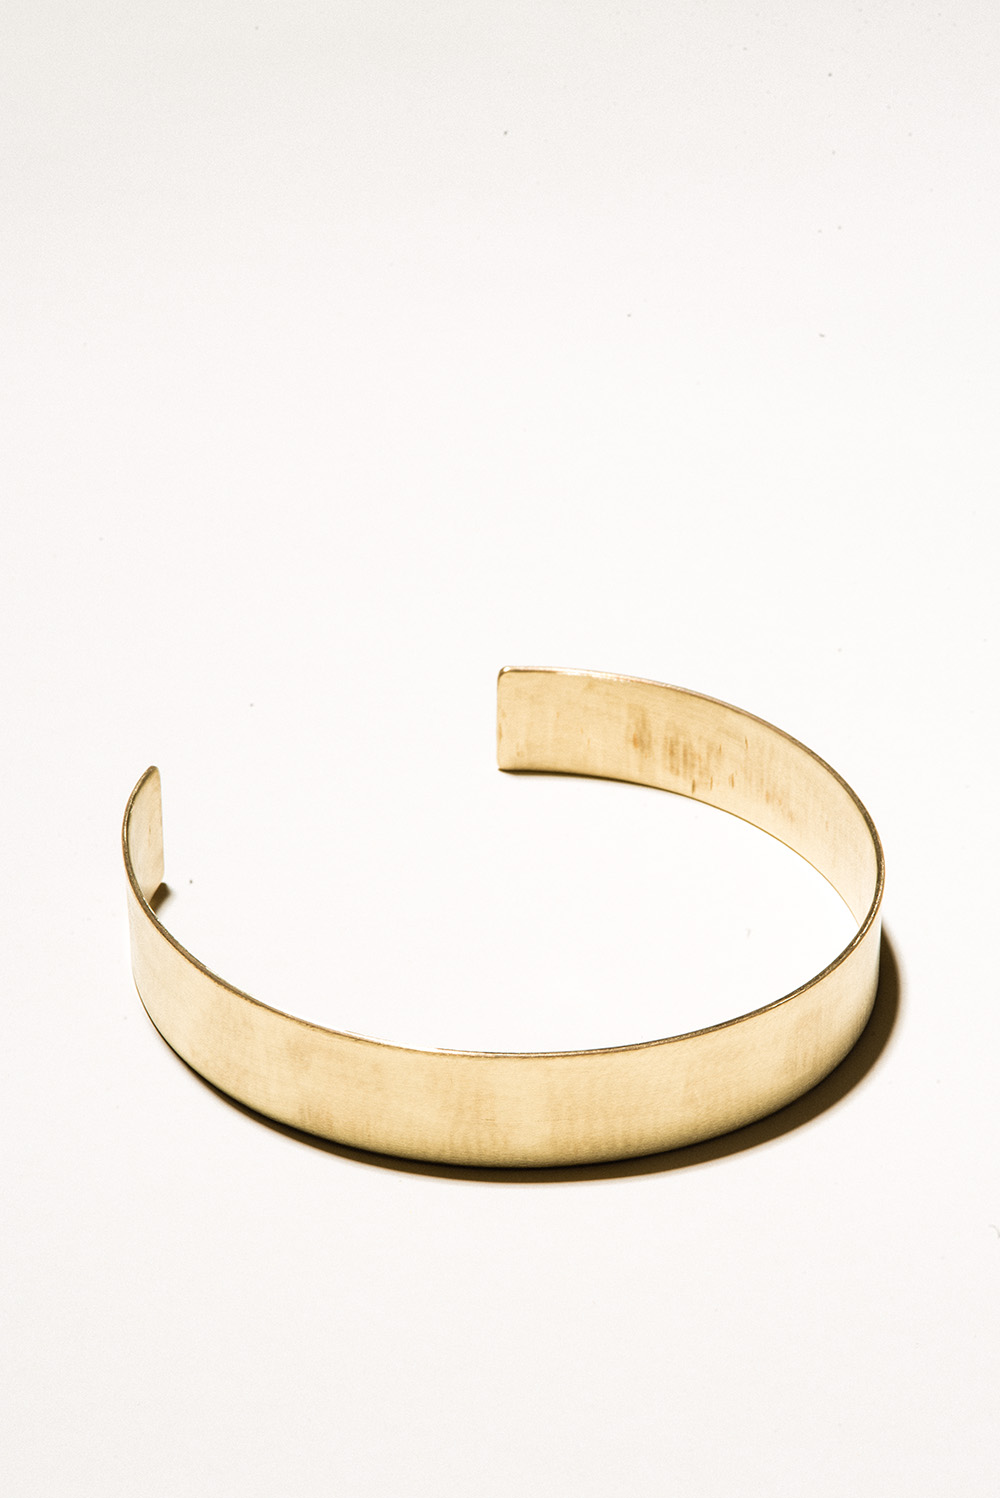 20 Brass Collar - 20mm wideJewelers Brass with Lacquer FinishHand Smithed$175